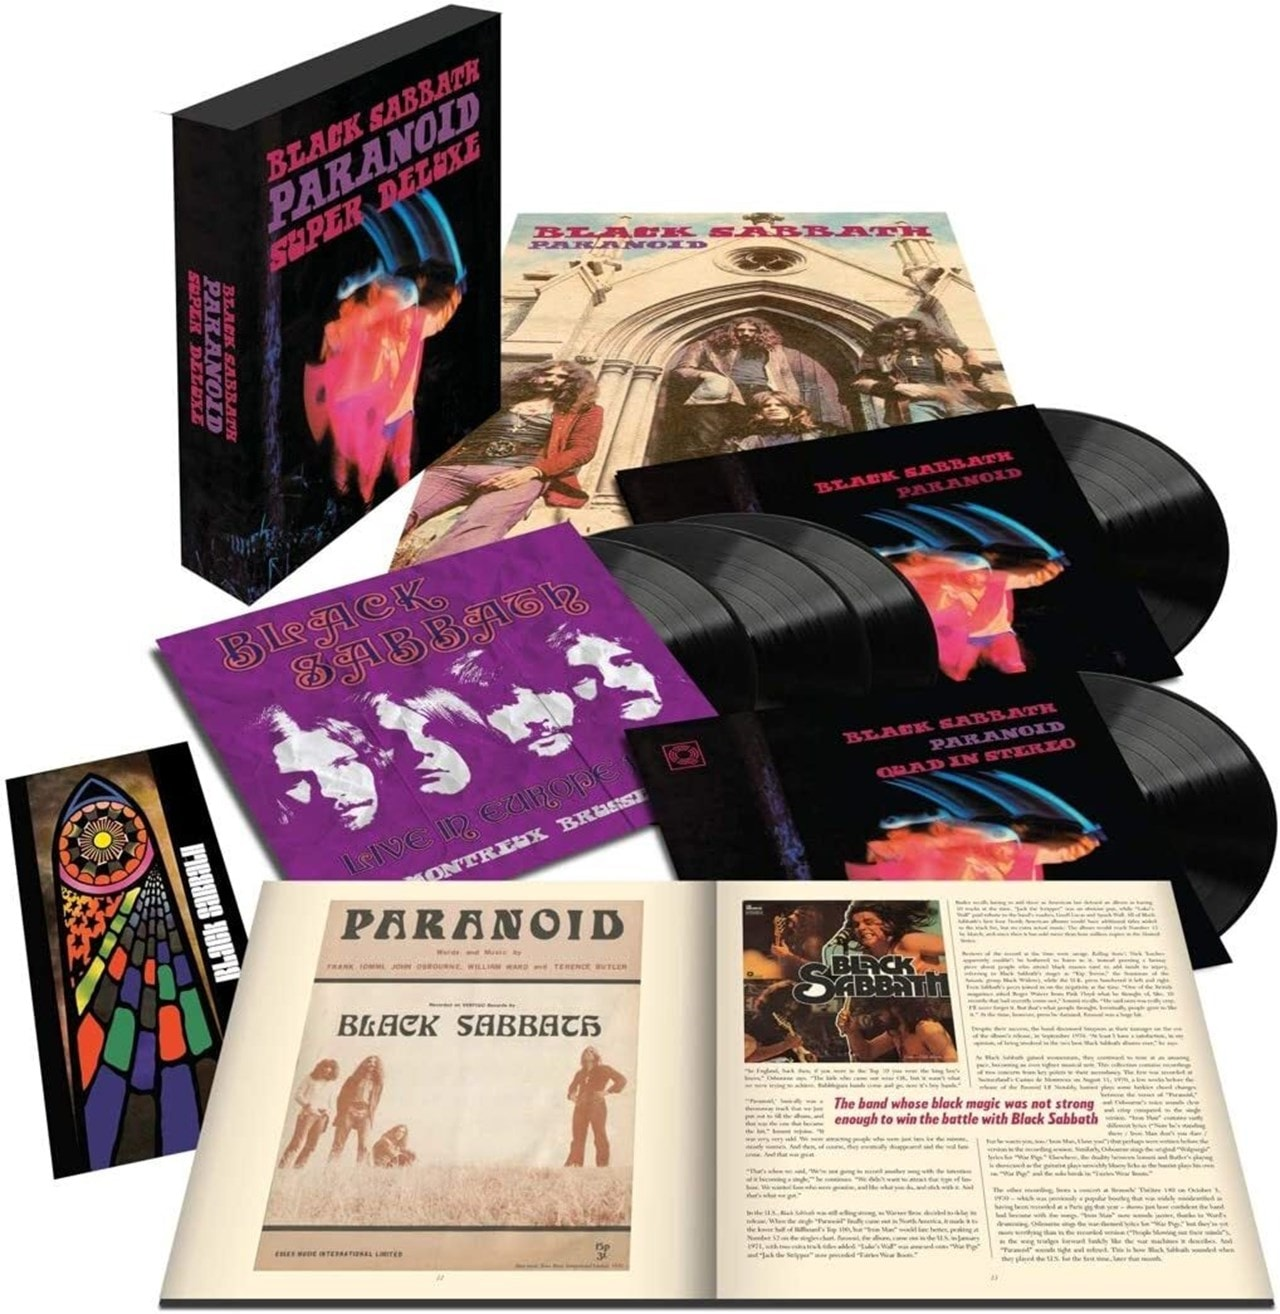 Black Sabbath	- Paranoid (50th Anniversary Edition) 5LP Super Deluxe Box Set